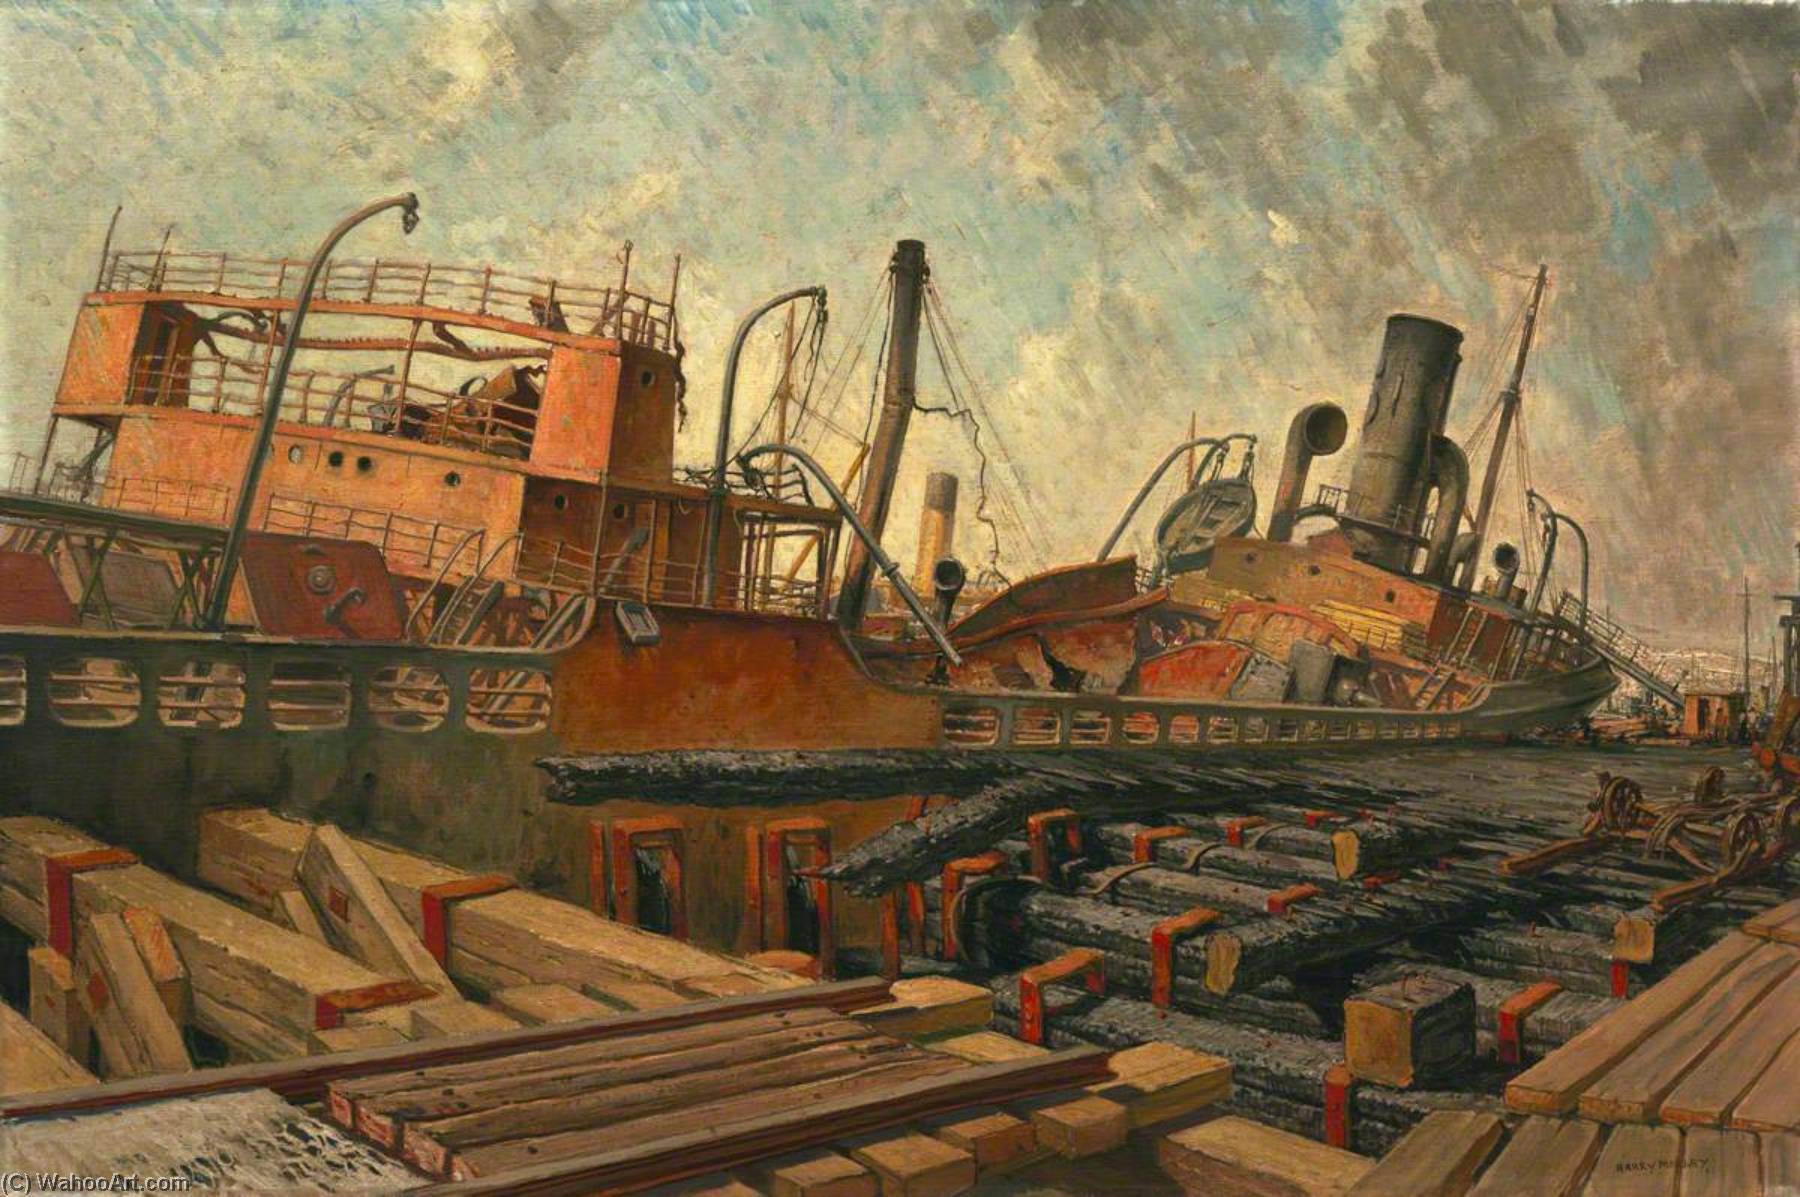 The Bombed SS 'Toscalusa' at a Western Port, Oil On Canvas by Harry Morley (1881-1943)